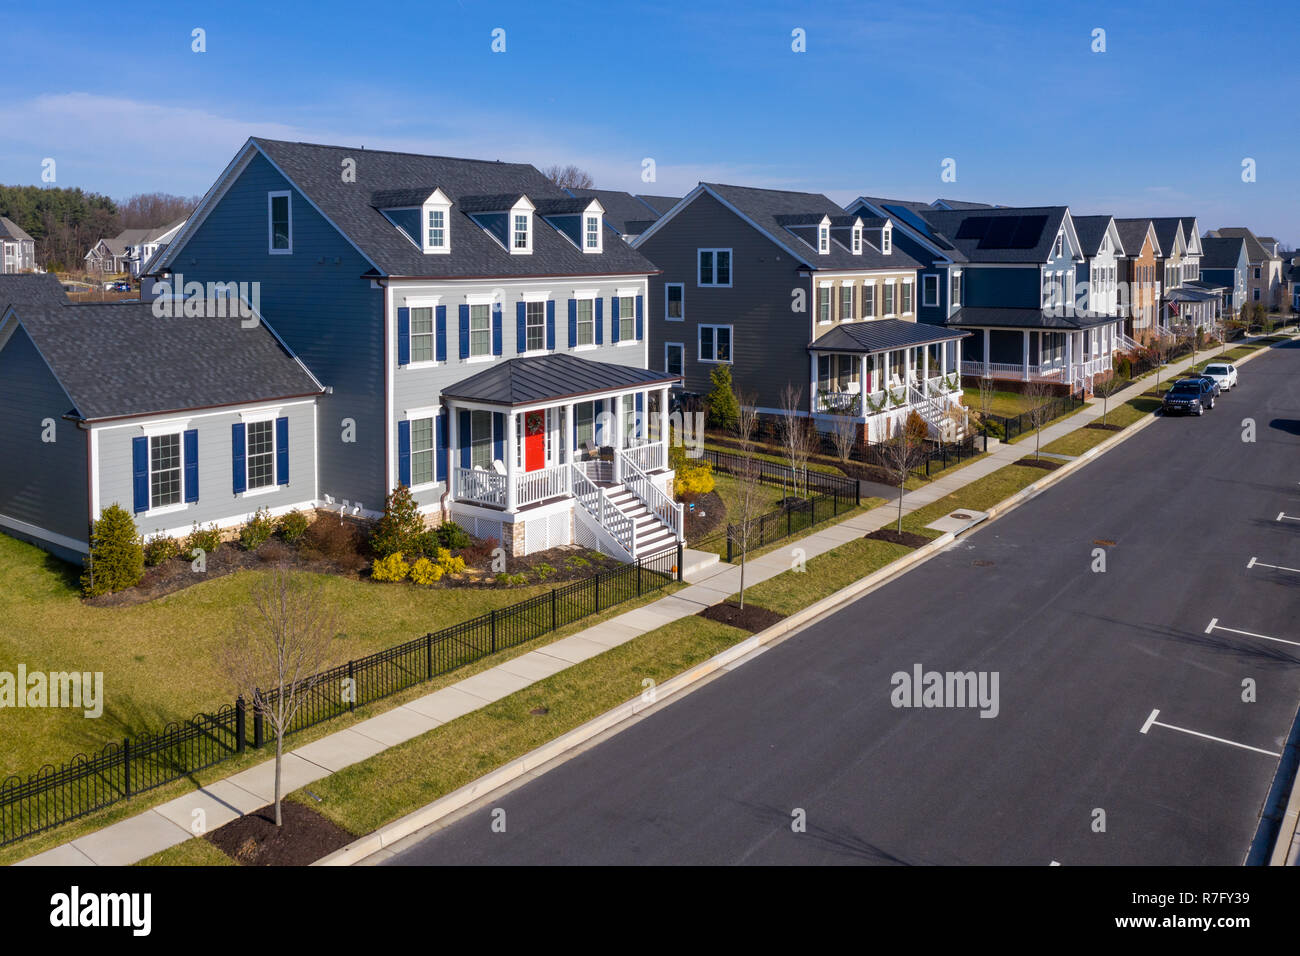 Aerial view of typical upper class American single family real estate homes with vinyl siding and brick facade in the East Coast of the United States Stock Photo